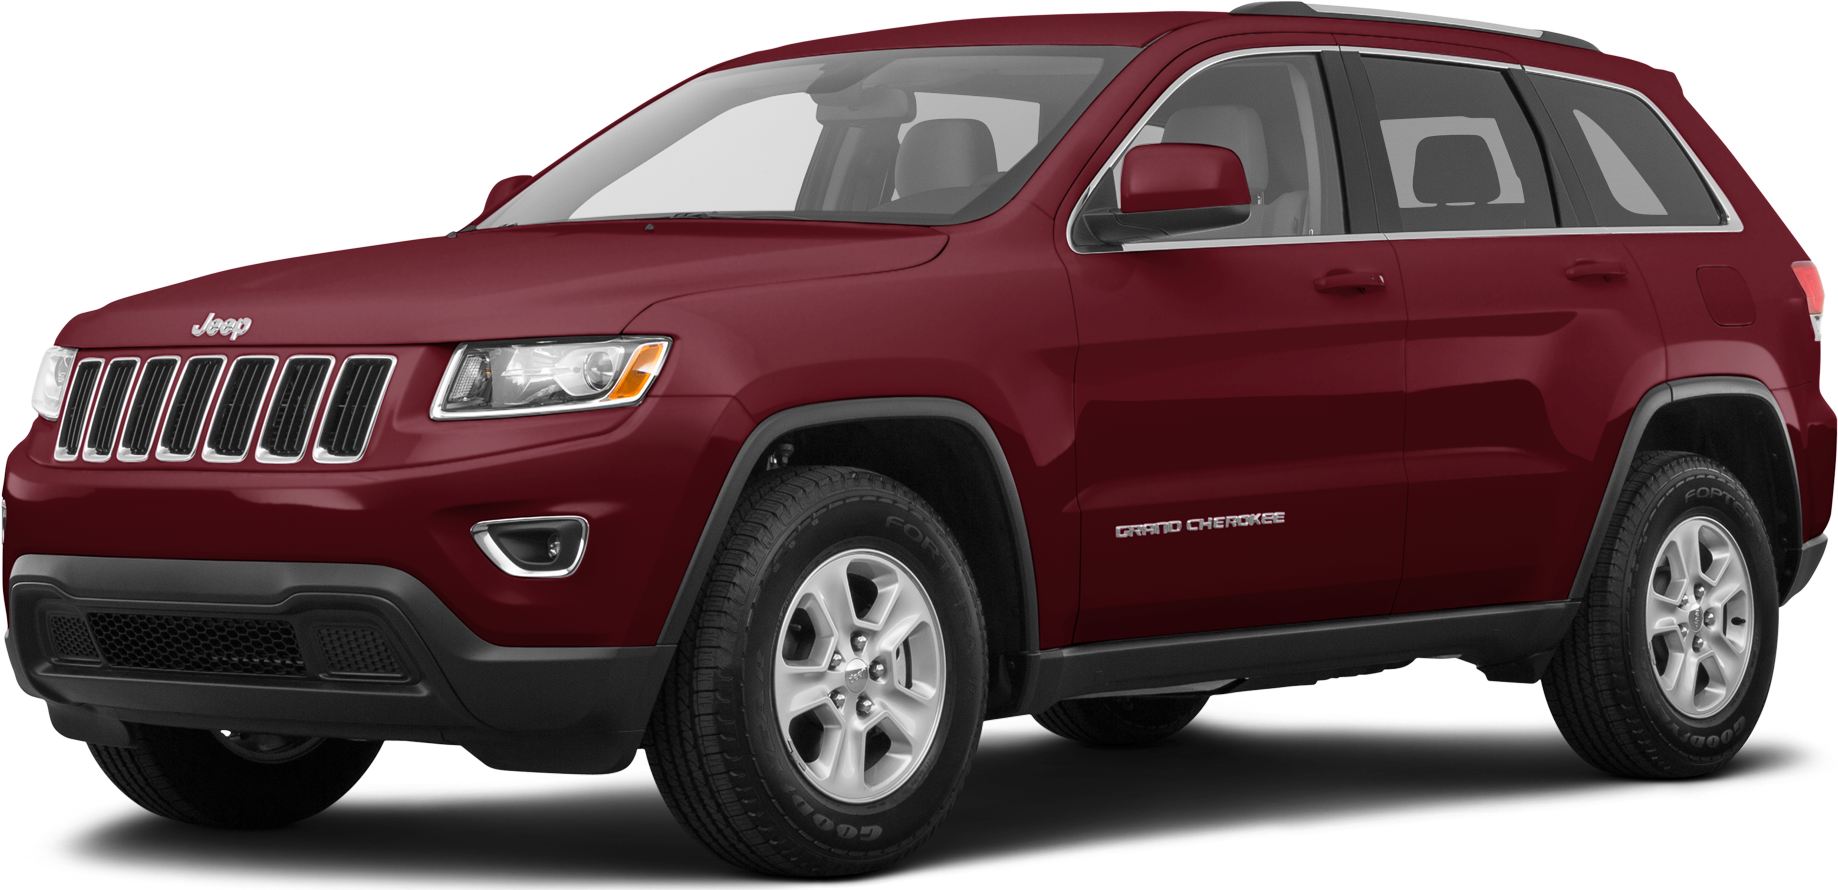 2016 Jeep Grand Cherokee Values Cars For Sale Kelley Blue Book